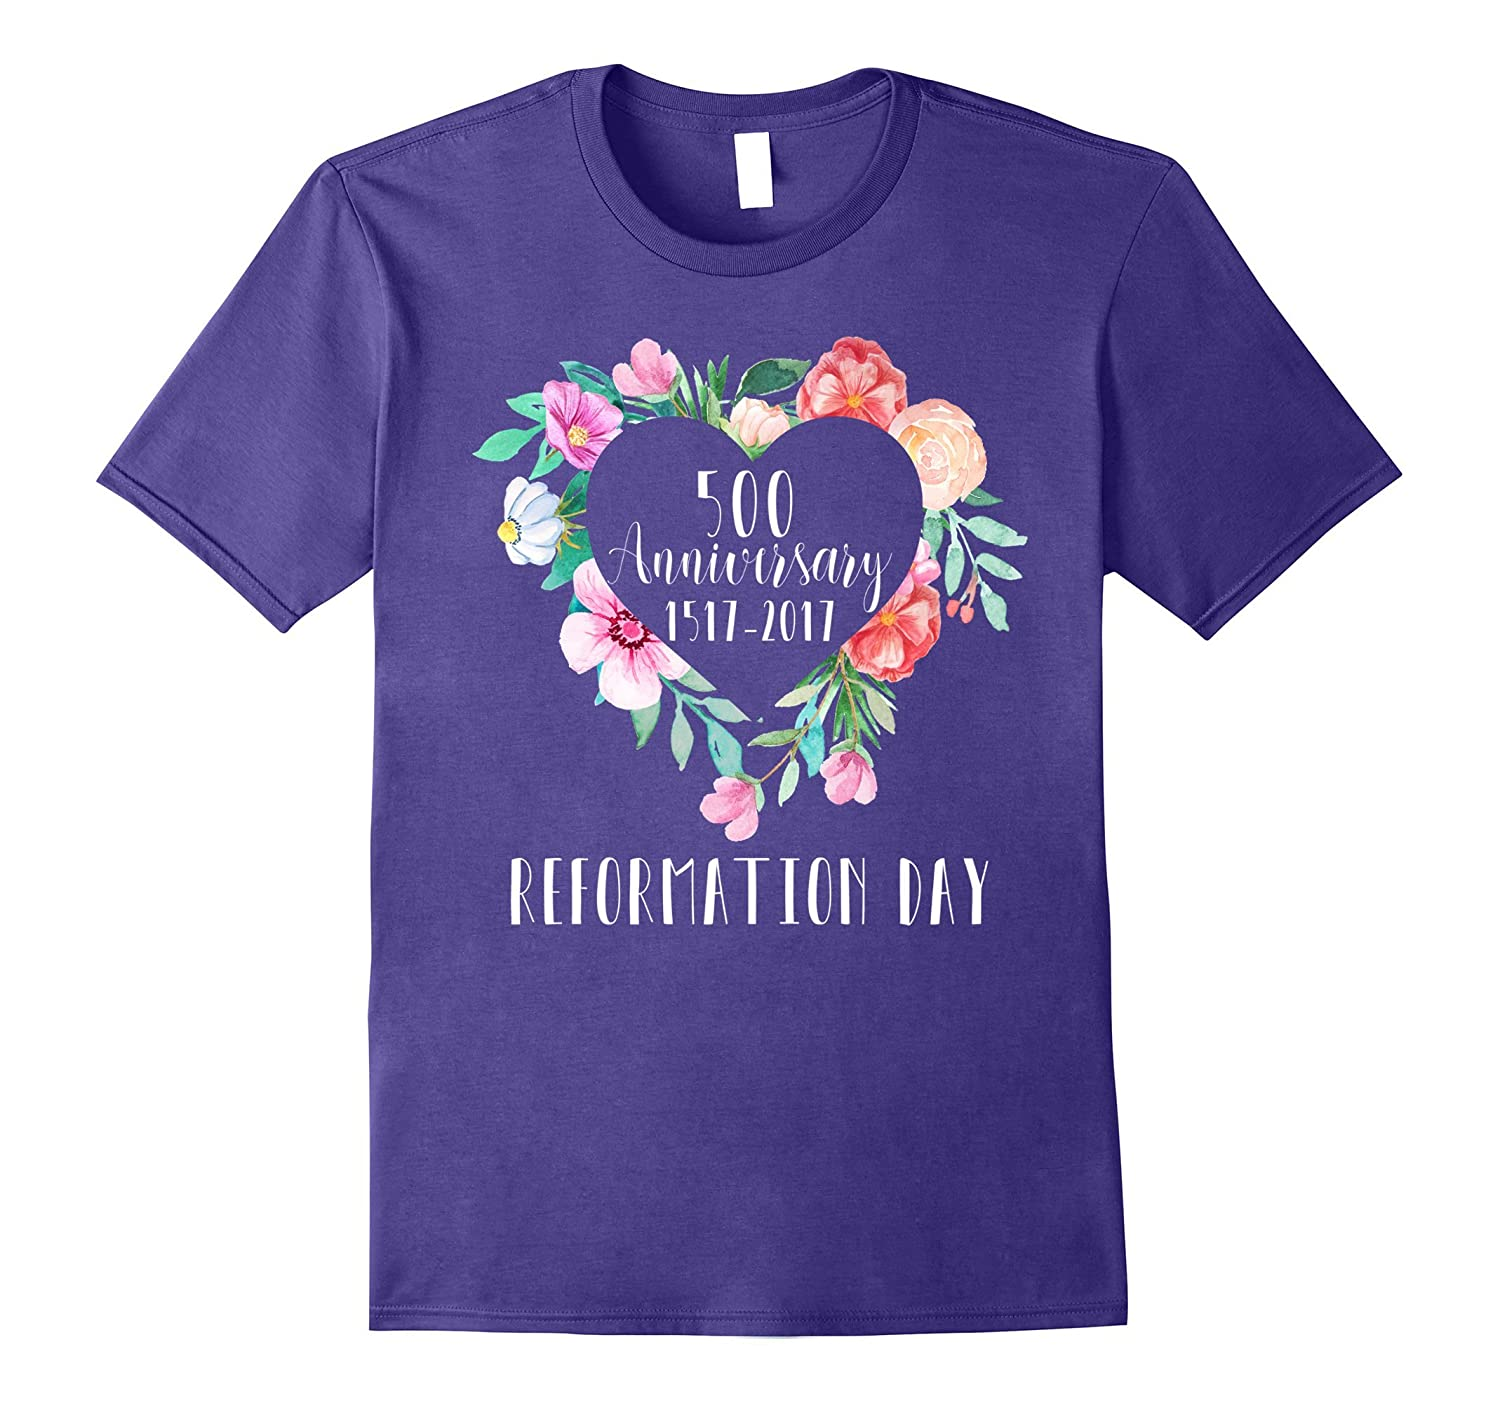 Reformation Day 500 Anniversary Floral Rose Heart Tee-FL